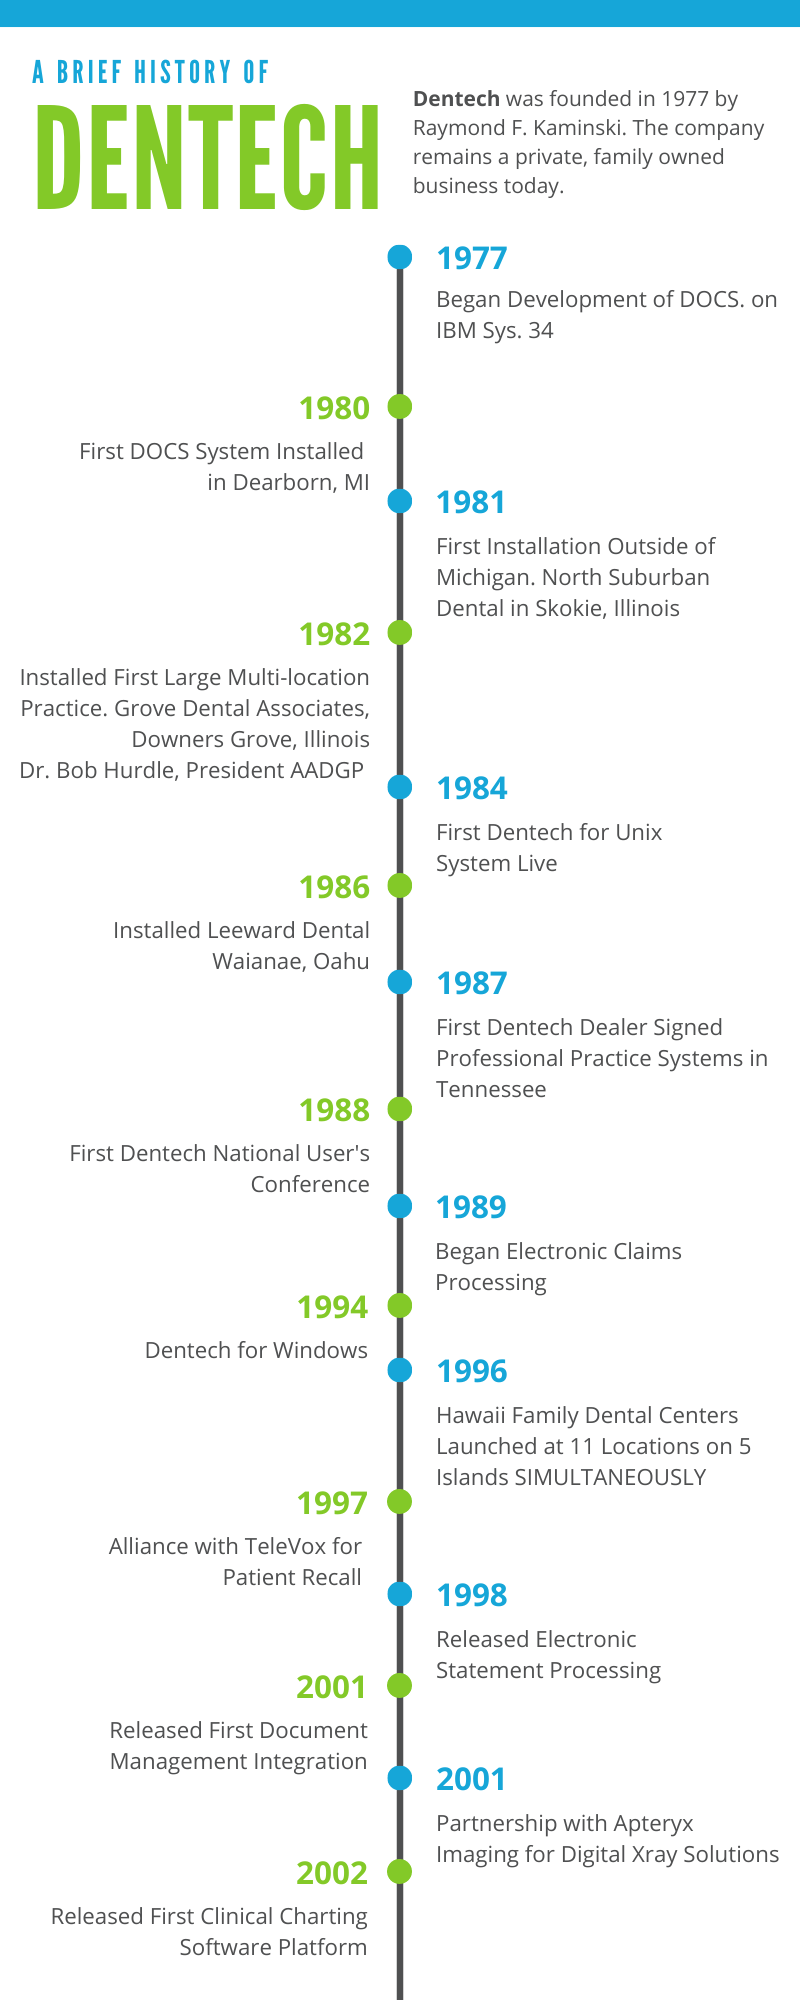 About Dentech Timeline 1977-2002